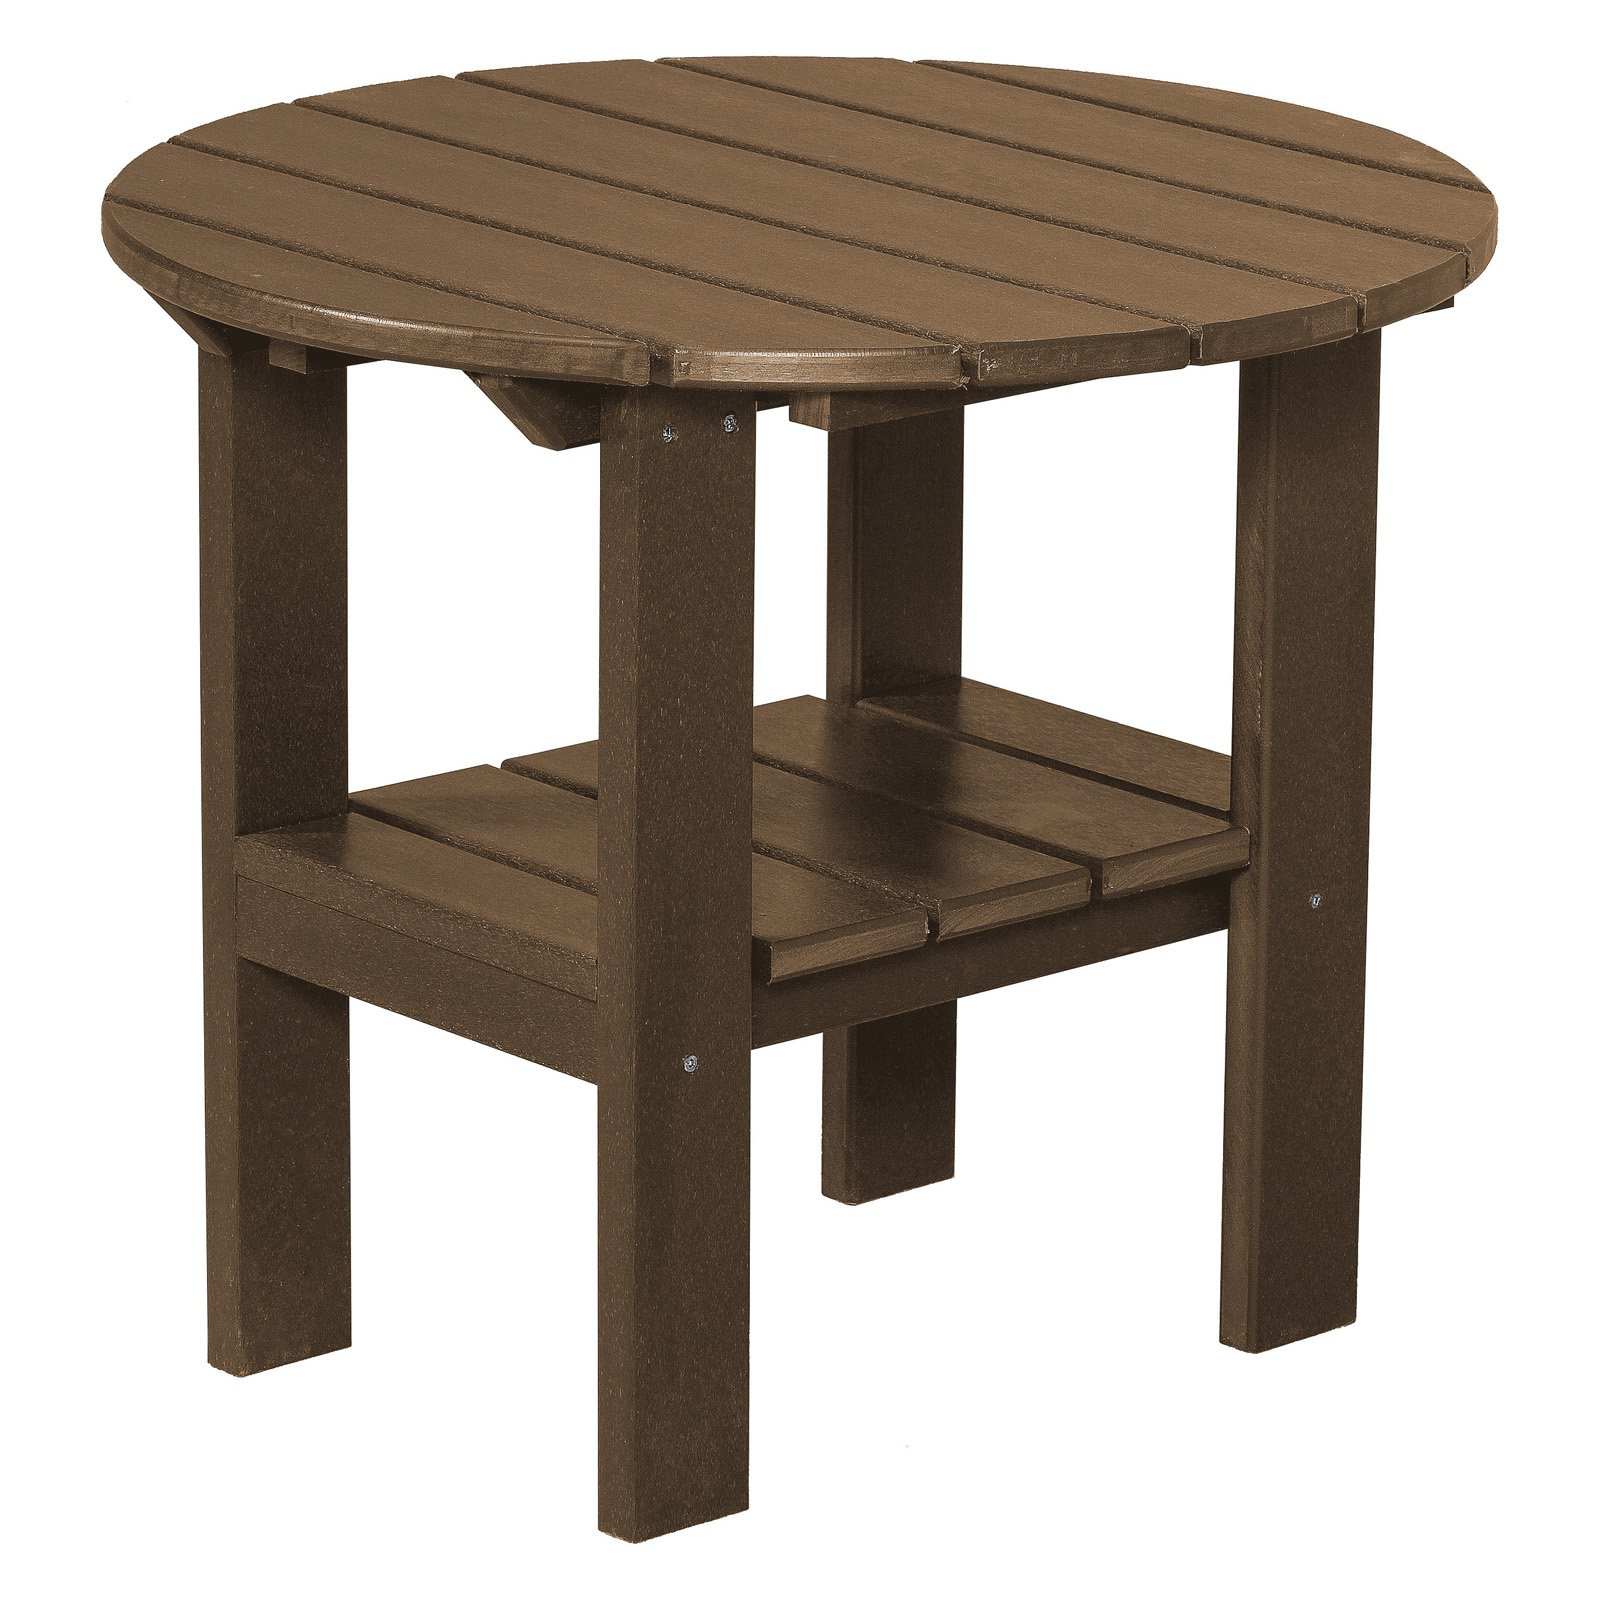 Little Cottage Classic Round Adirondack Side Table